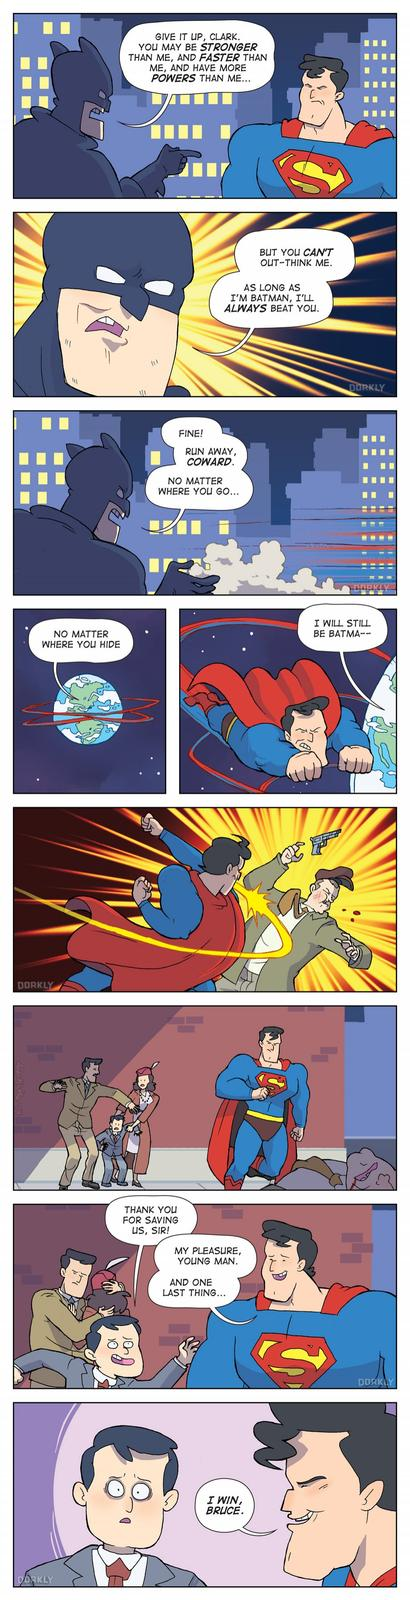 The Simplest Solution to Batman v. Superman